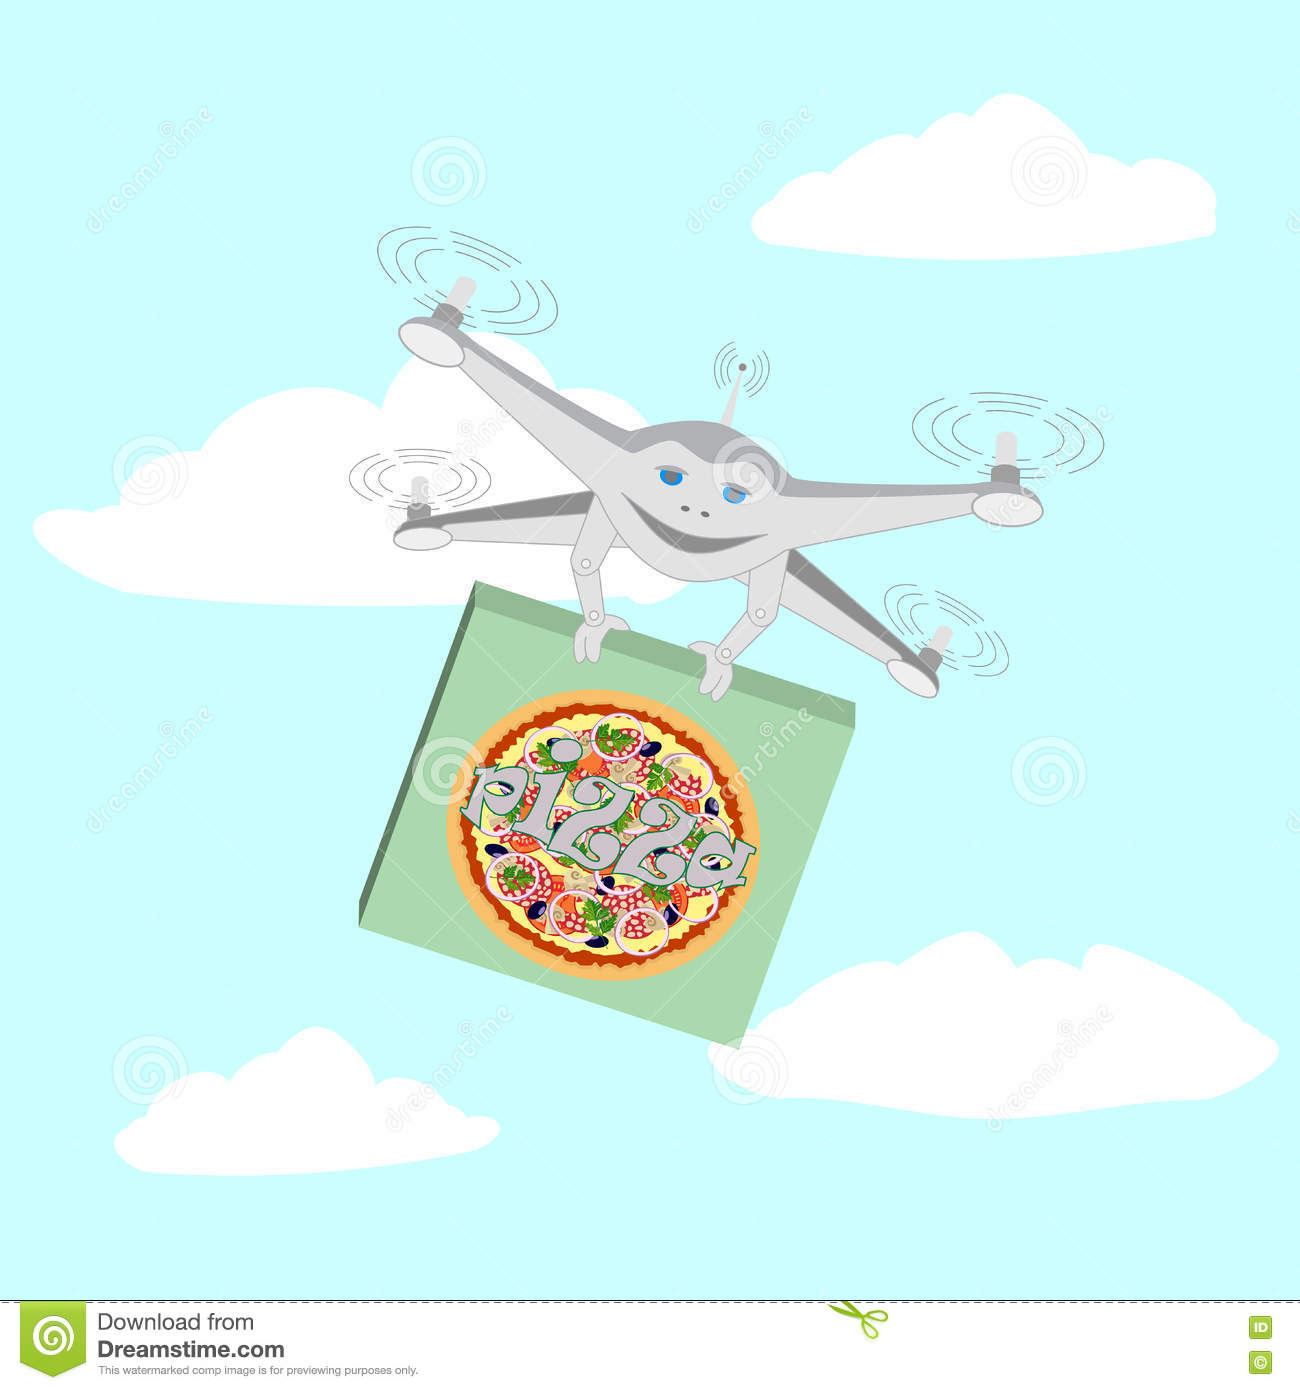 Drone Air Delivery Pizza